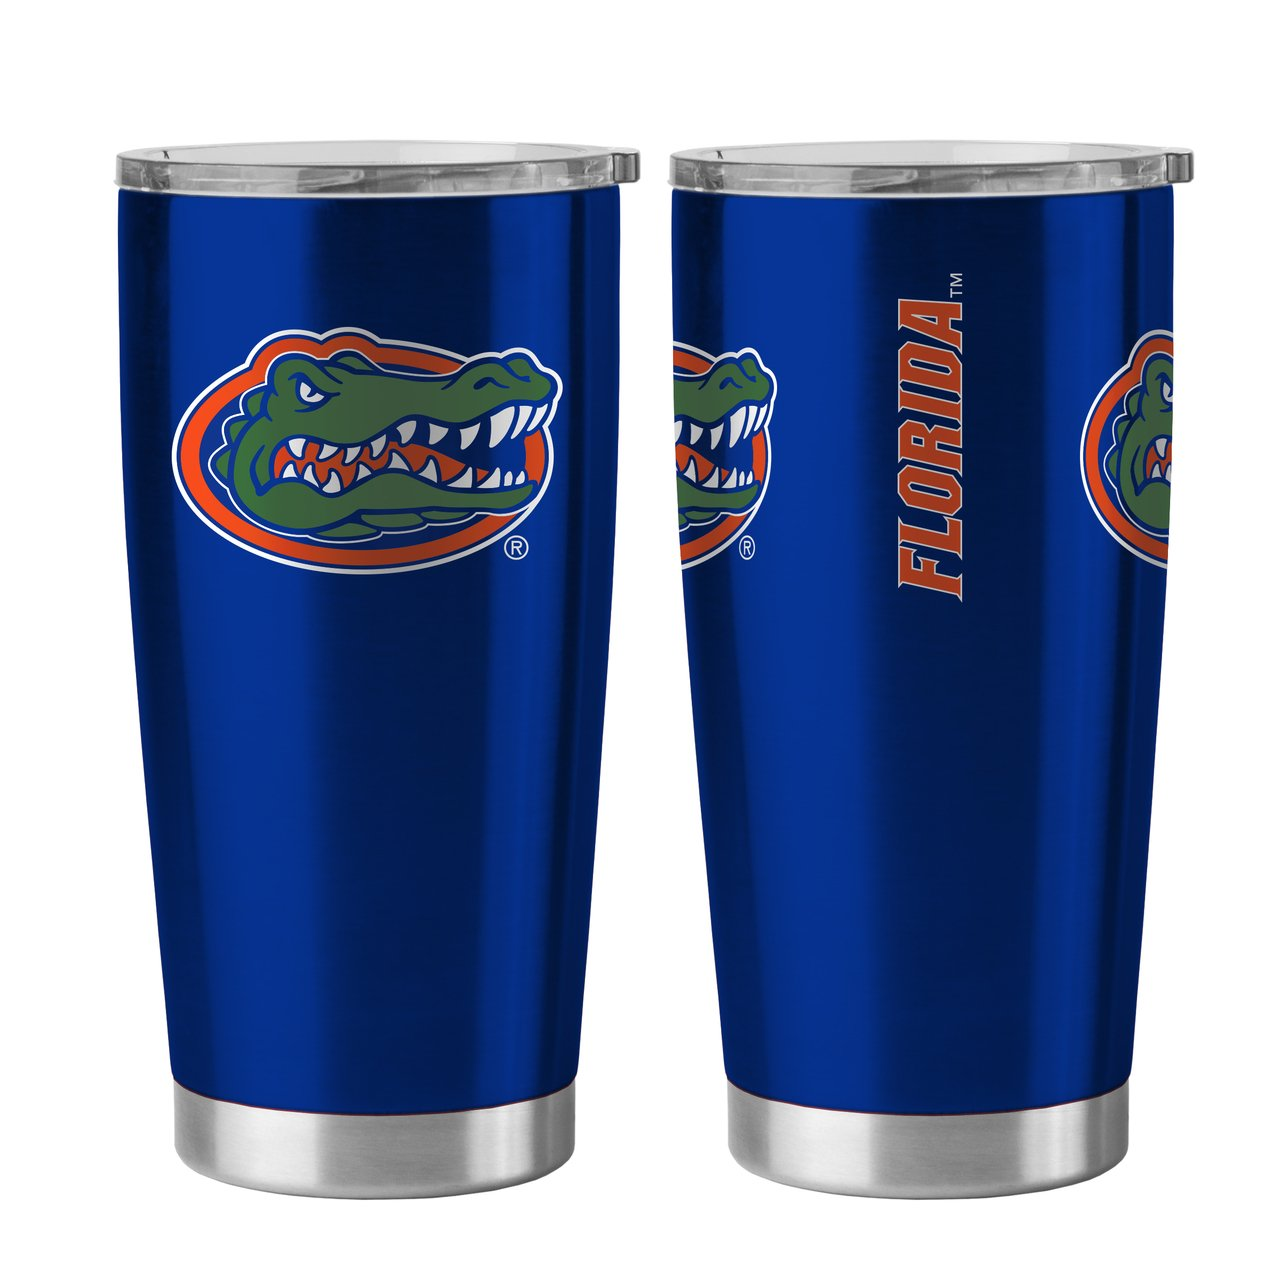 Florida Gators 20 oz Ultra Stainless Steel Travel Tumbler by Boelter Sports